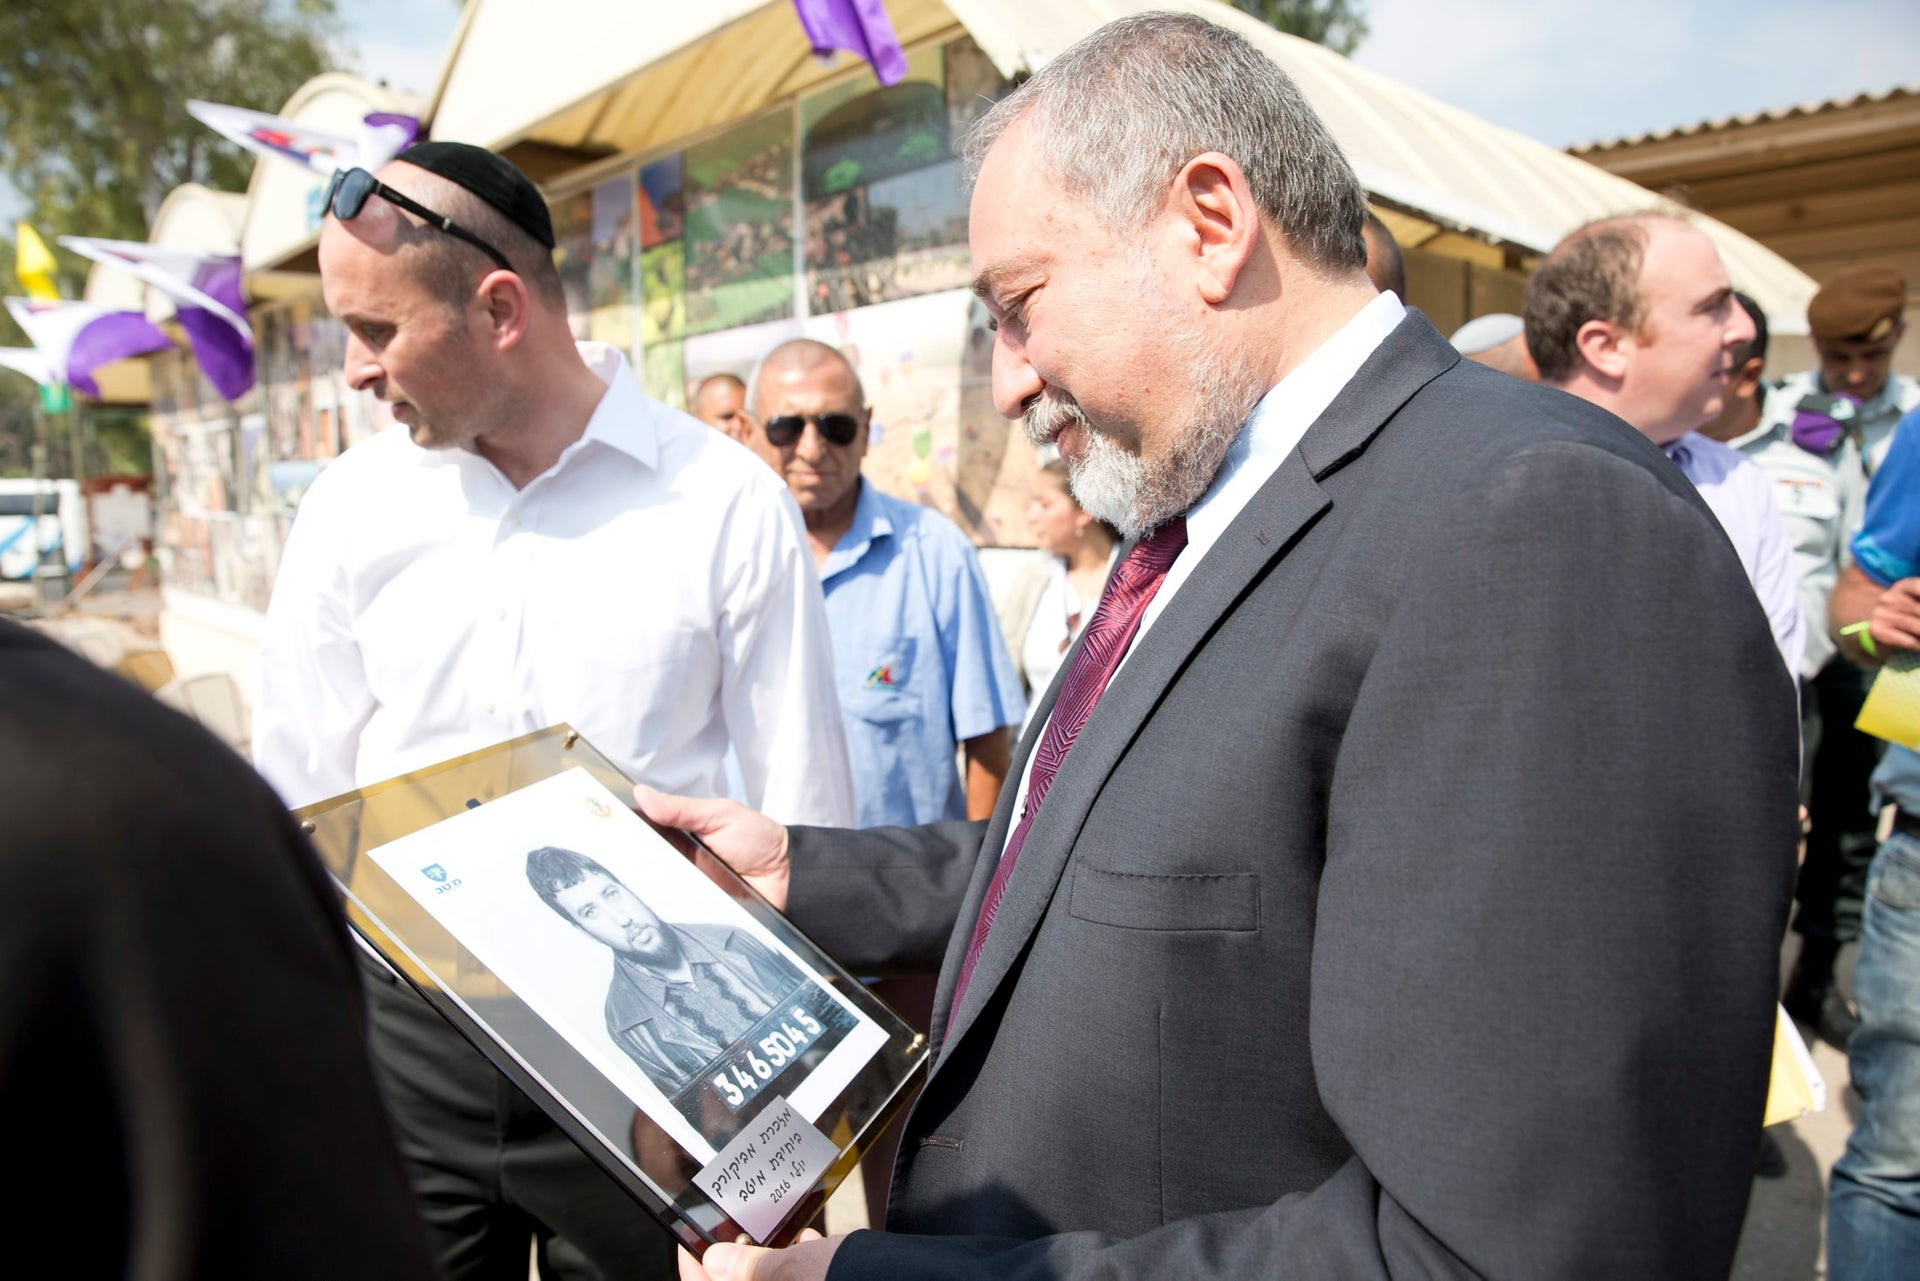 Defense Minister Avigdor Lieberman visits new IDF recruits, holding a photo of himself on the day he was drafted in the IDF.